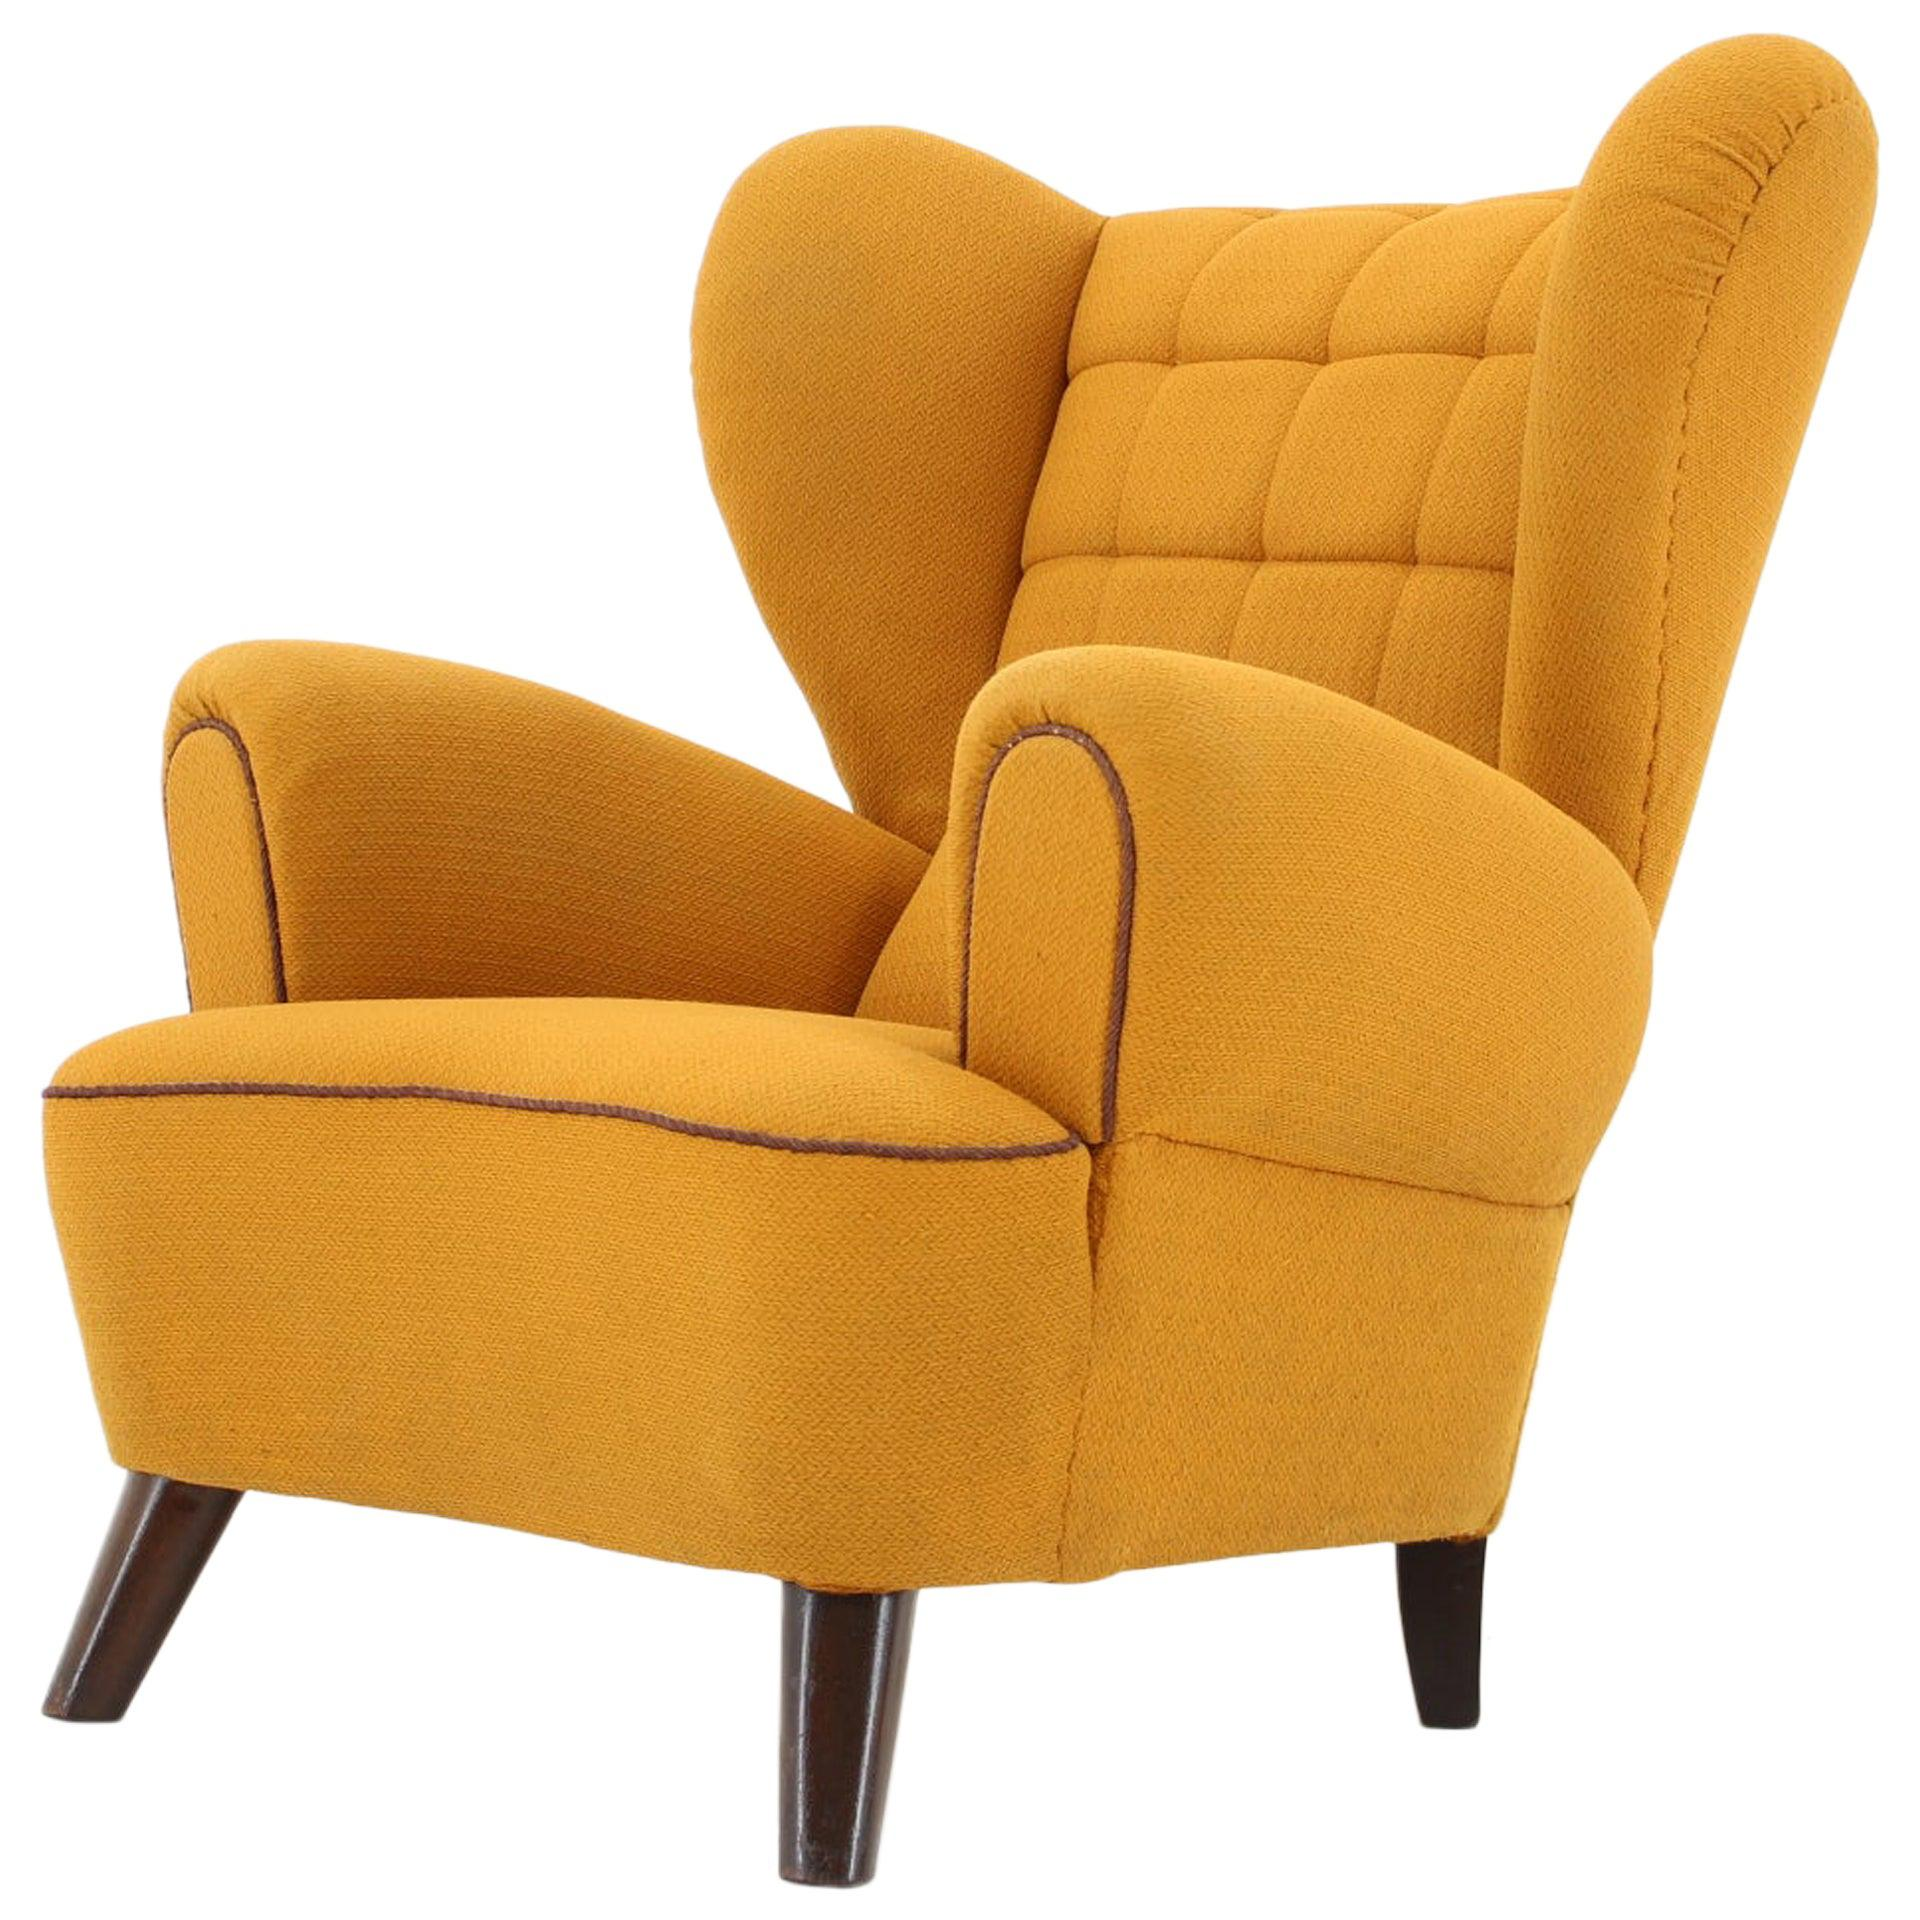 Vintage Rare Design Yellow Big Wing Chair, 1950s